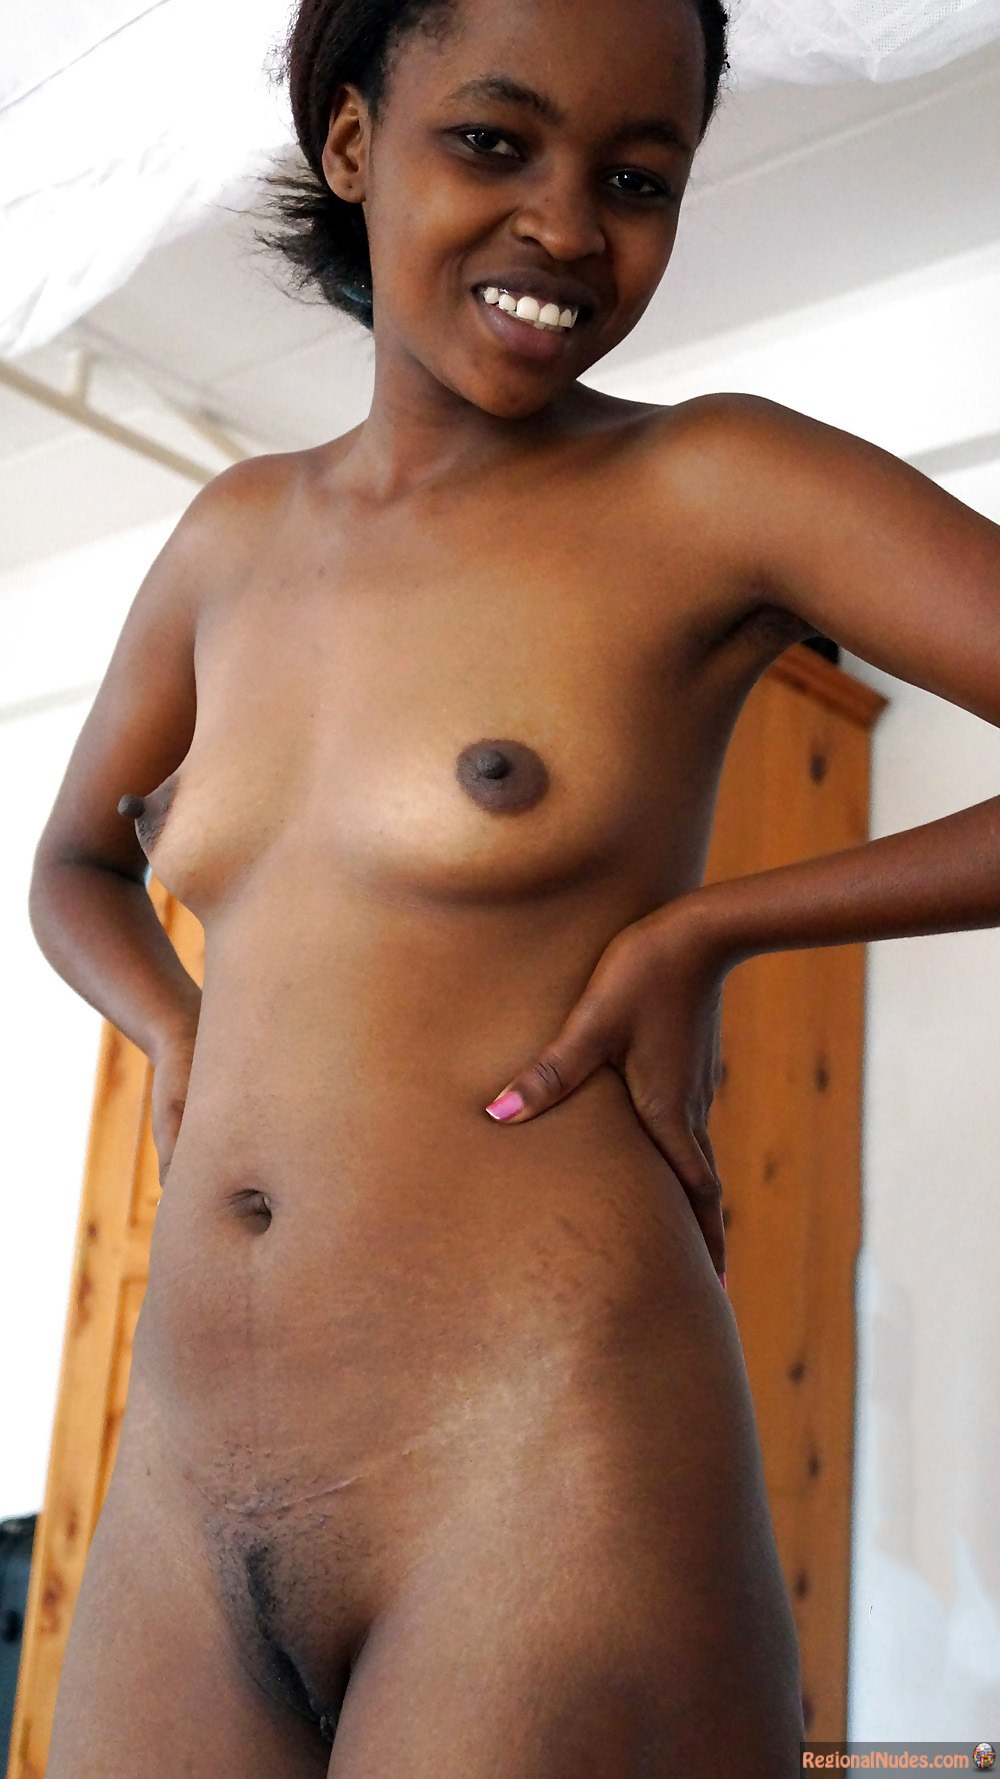 Tanzania girl tits you tell